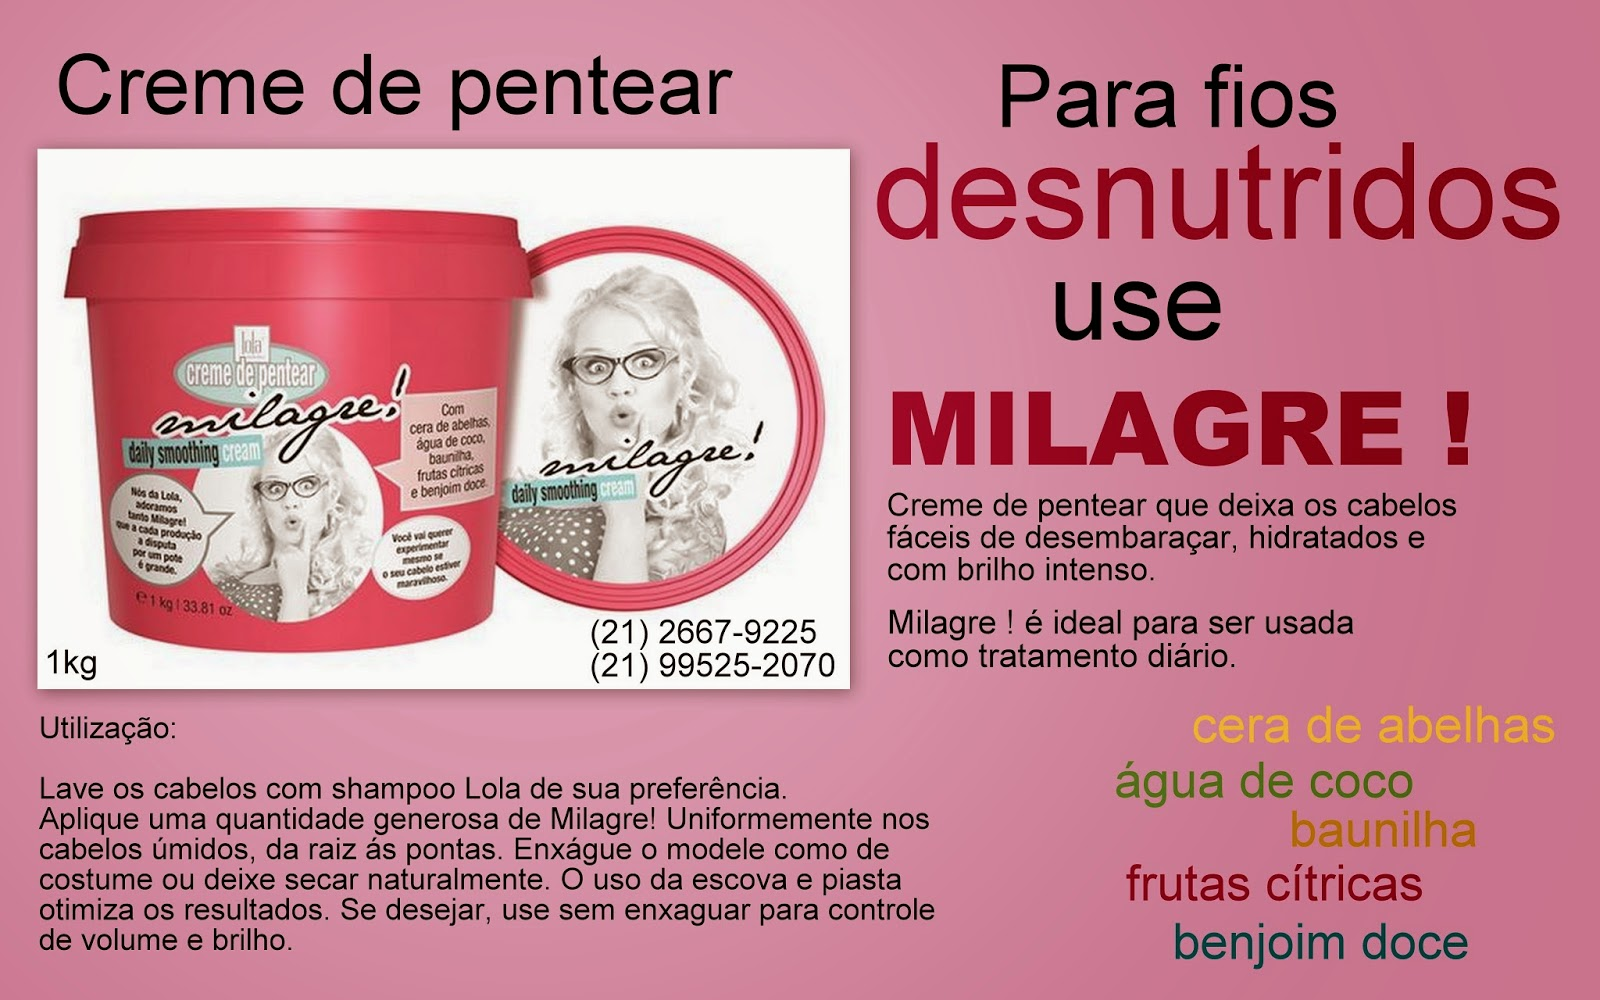 http://www.reviverrepresentacoes.com.br/loja/products/Milagre-%252d-Lola-.html